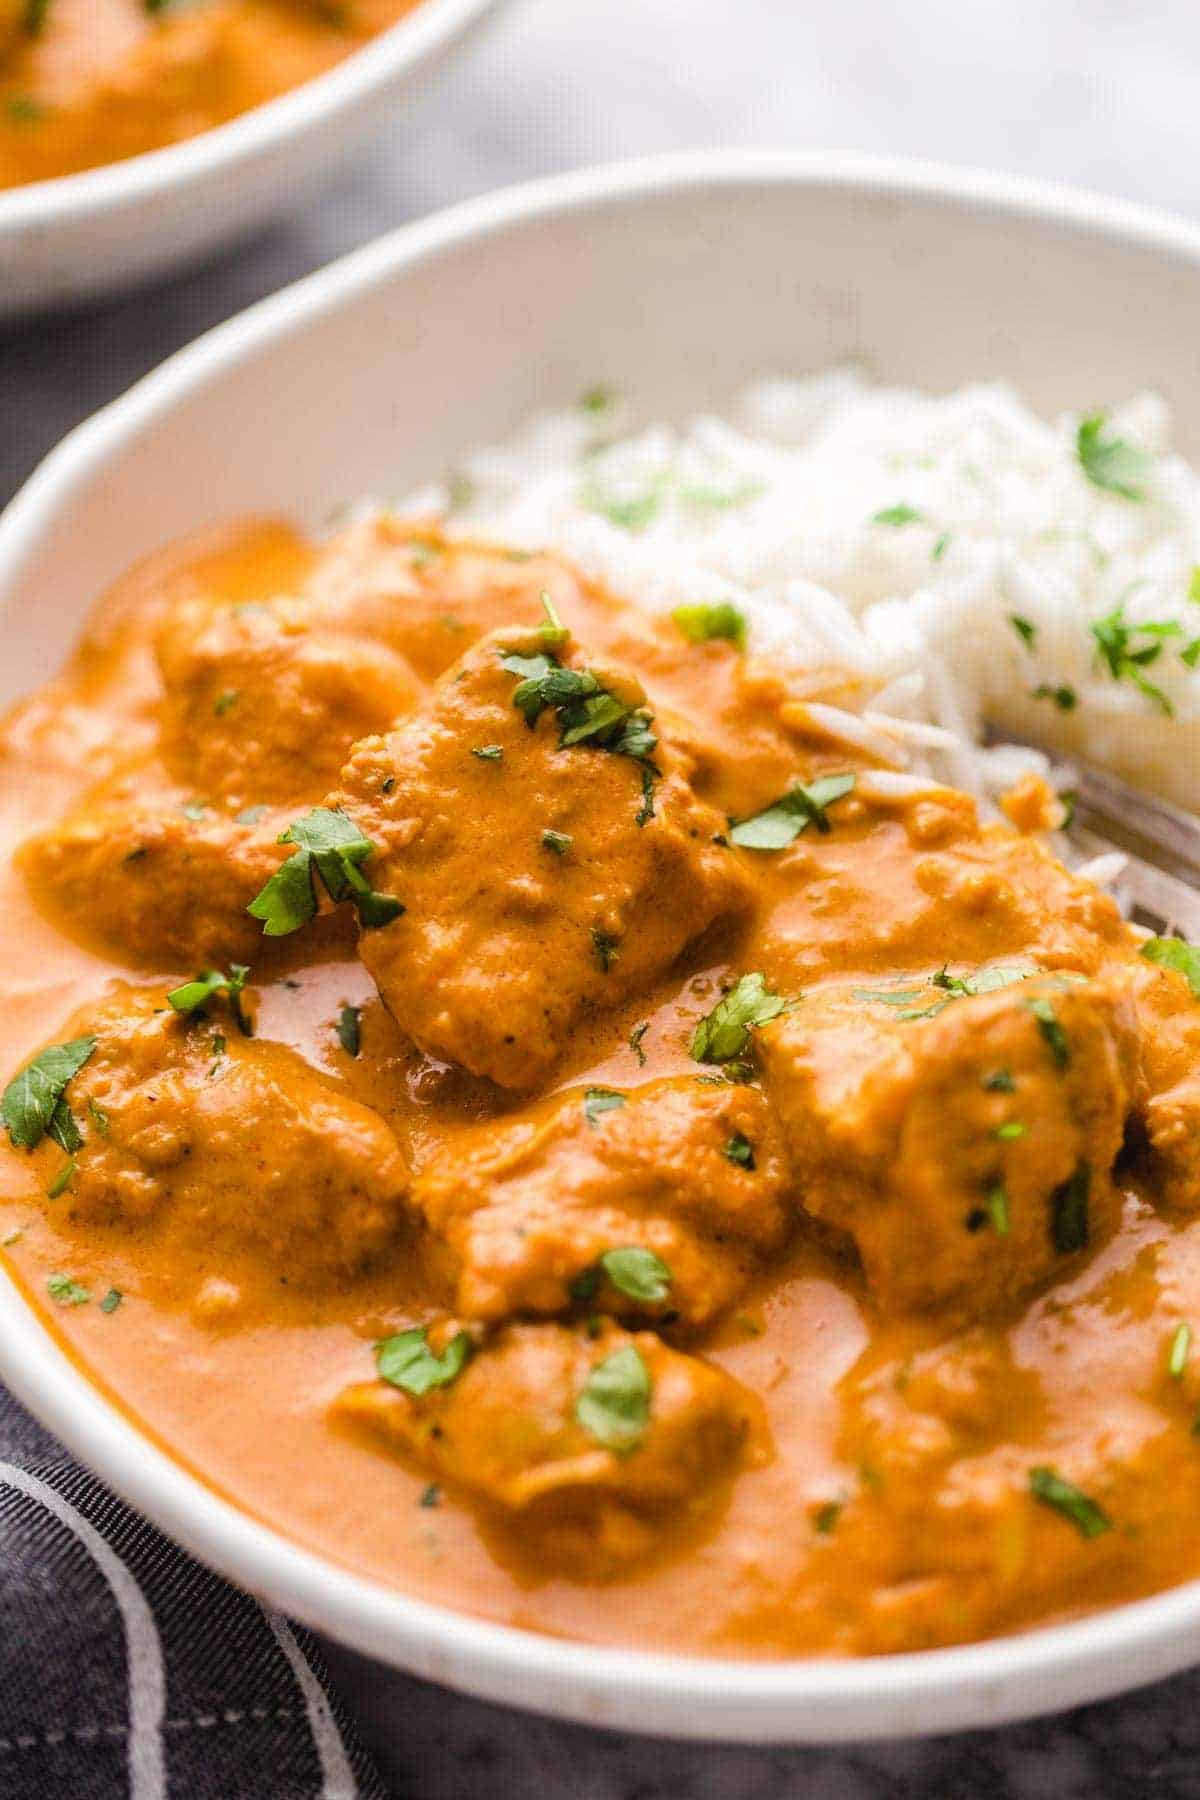 Butter chicken served with rice in a white bowl.